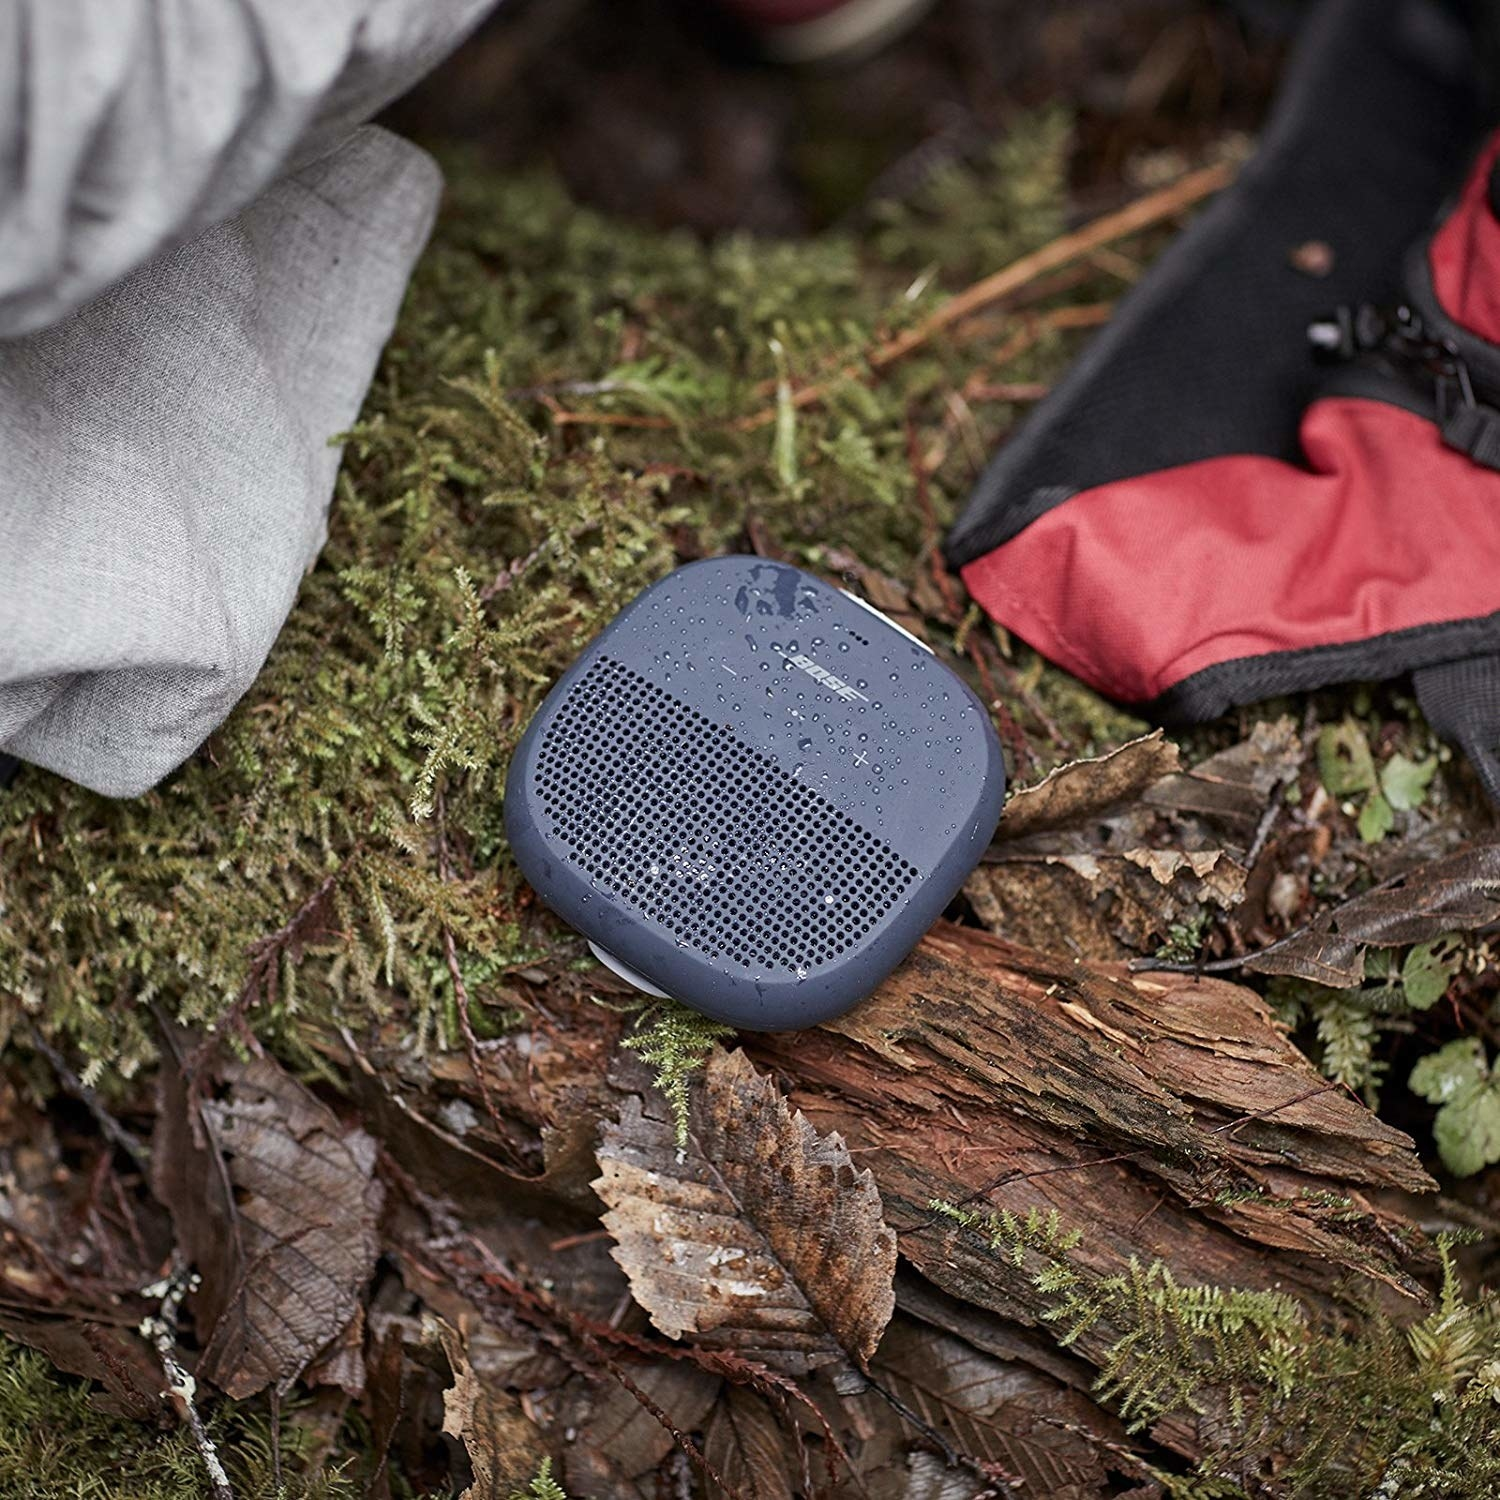 A Bose speaker on a mossy tree surrounded by camping gear